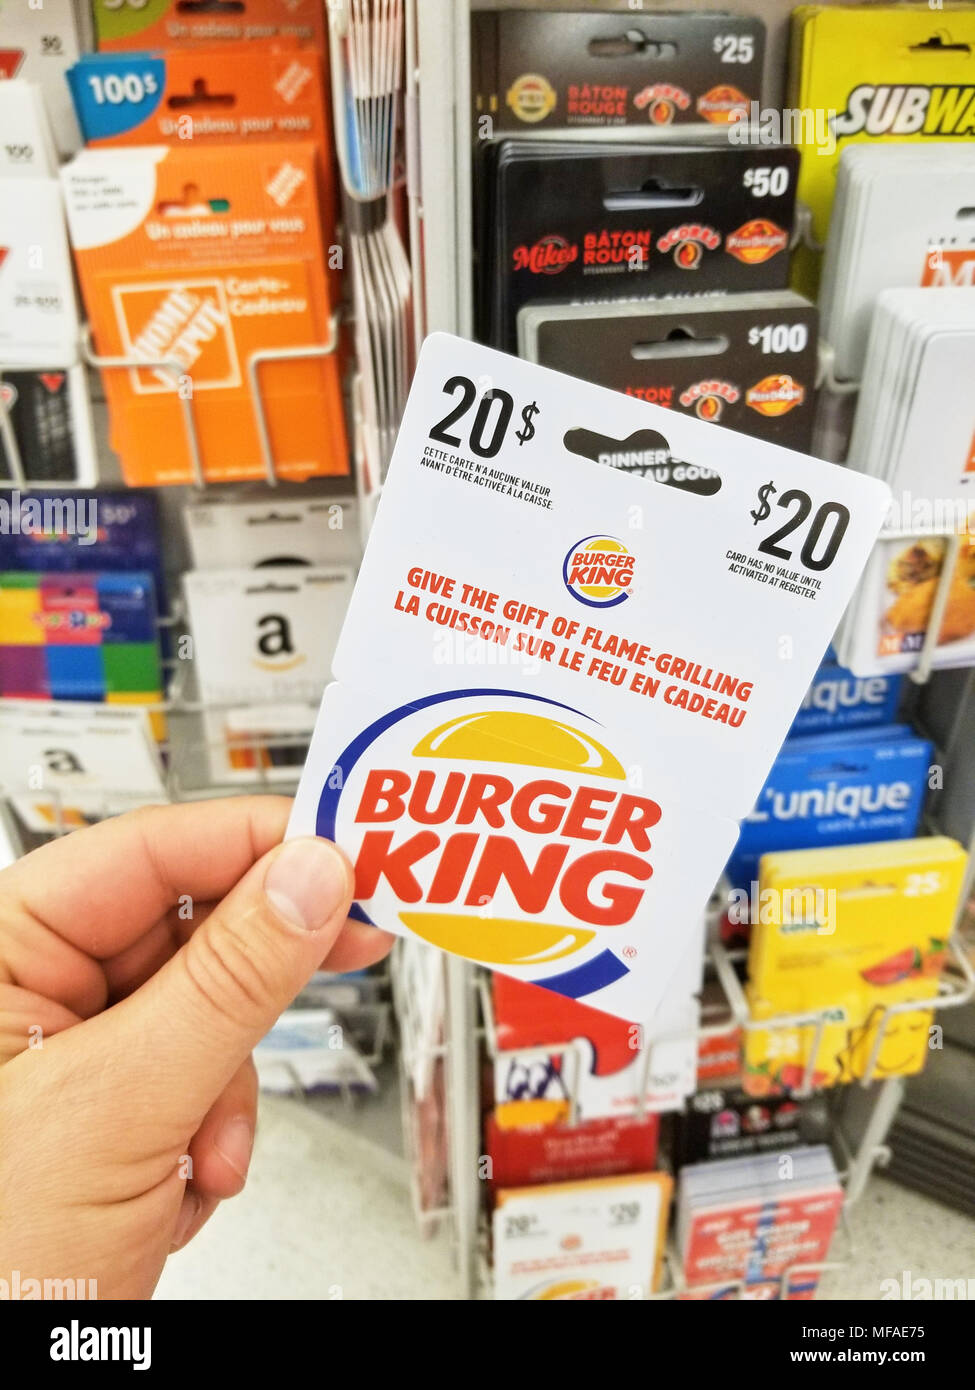 in and out burger gift card buy burger king stock photos buy burger king stock 444